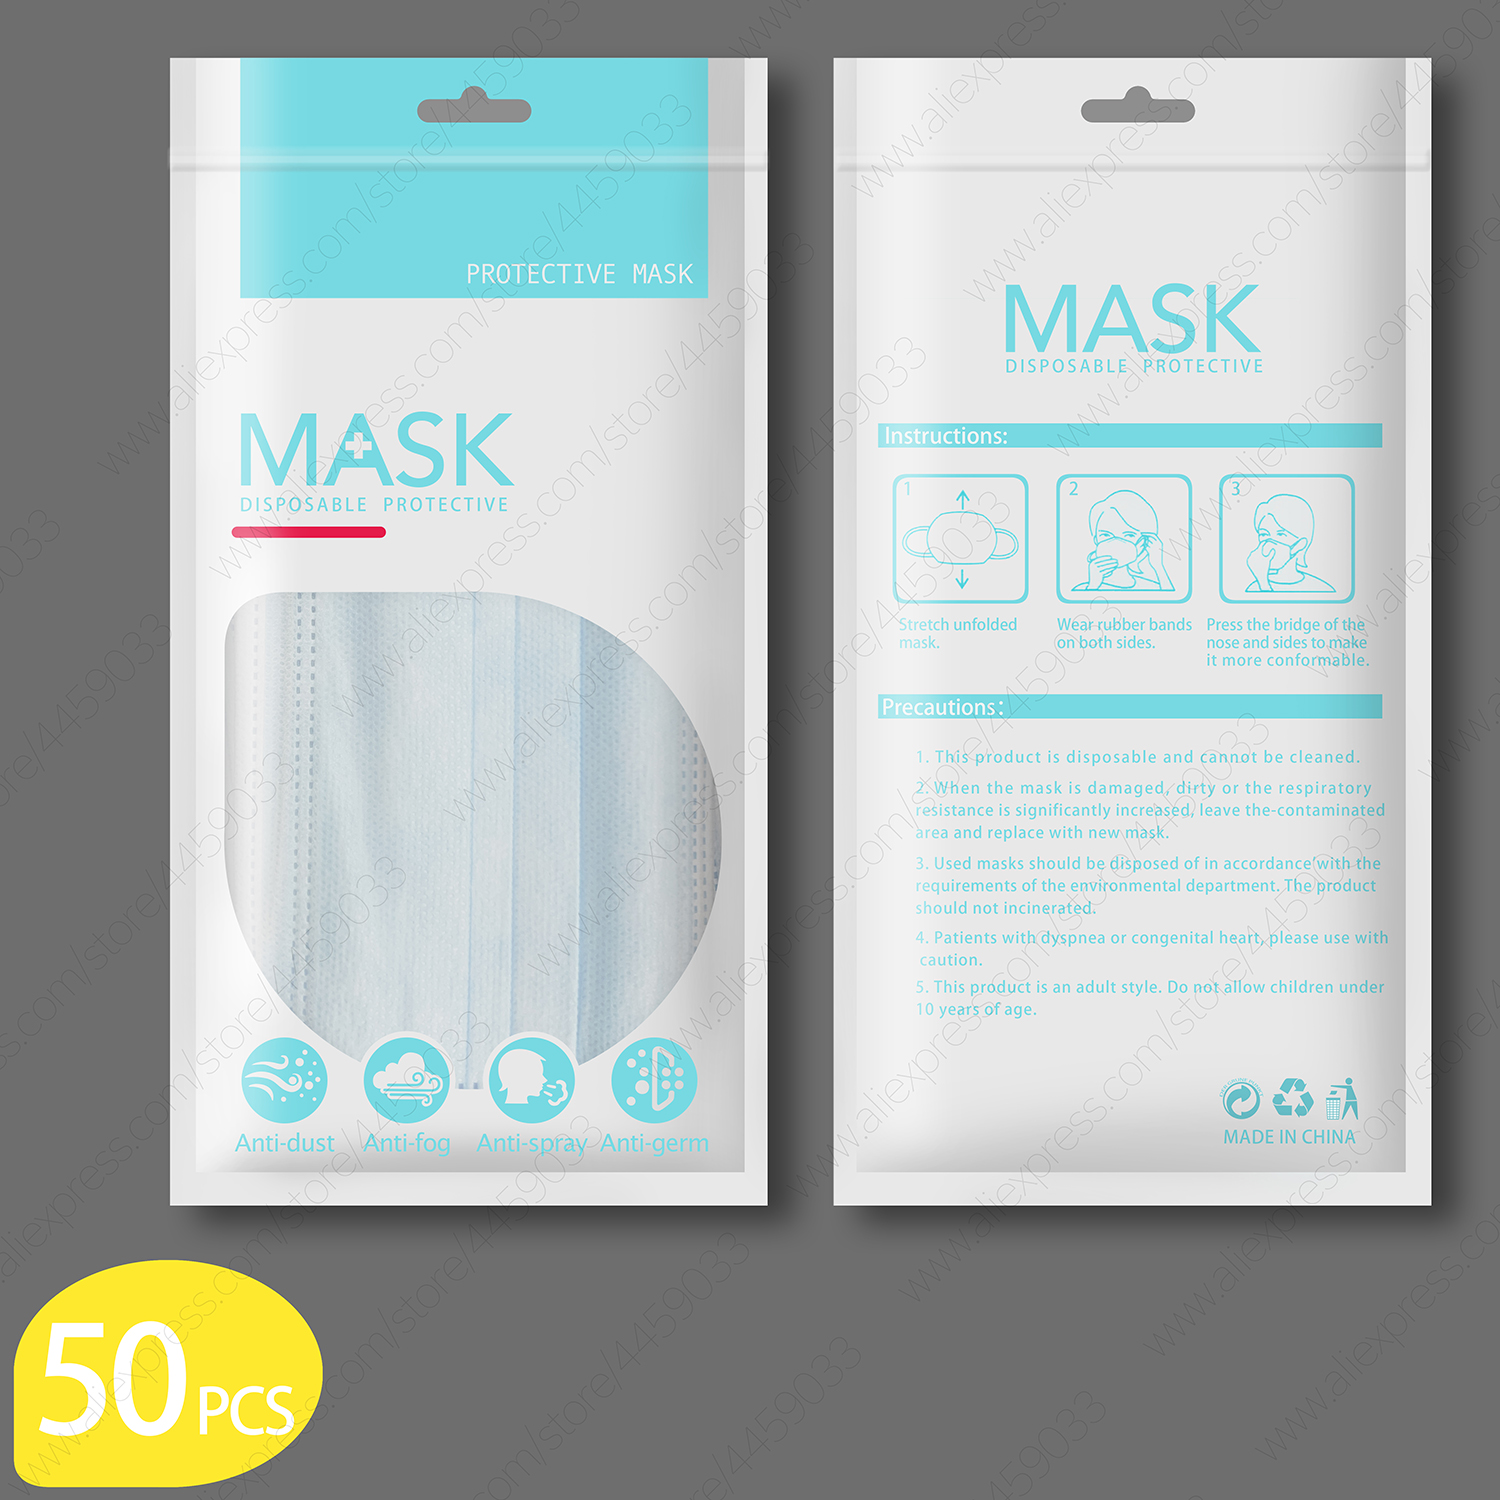 New Mask 50pcs 100pcs 20 pcs Disposable Earloop Face Mouth Masks 3  Layers Anti Dust For Surgical Medical Salon Antibacterial  -